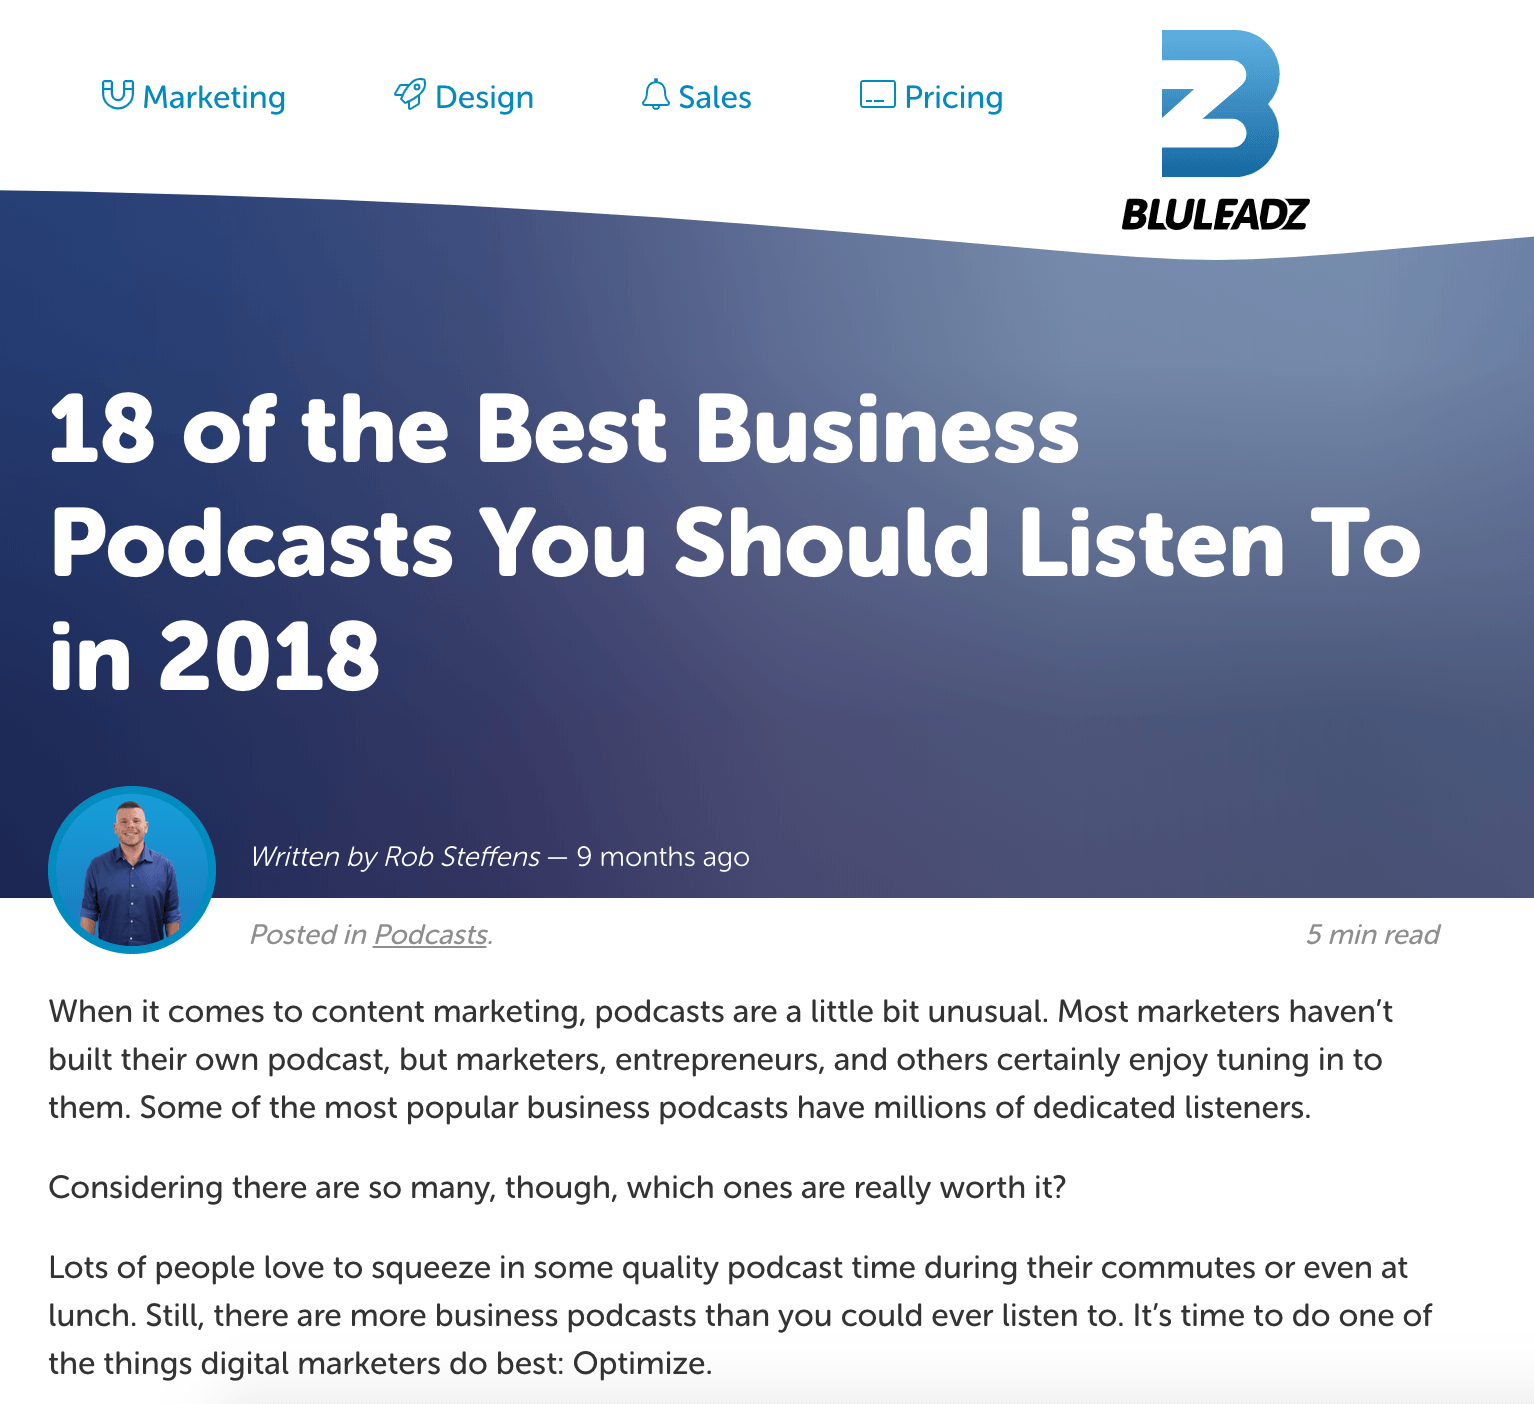 Podcast lists